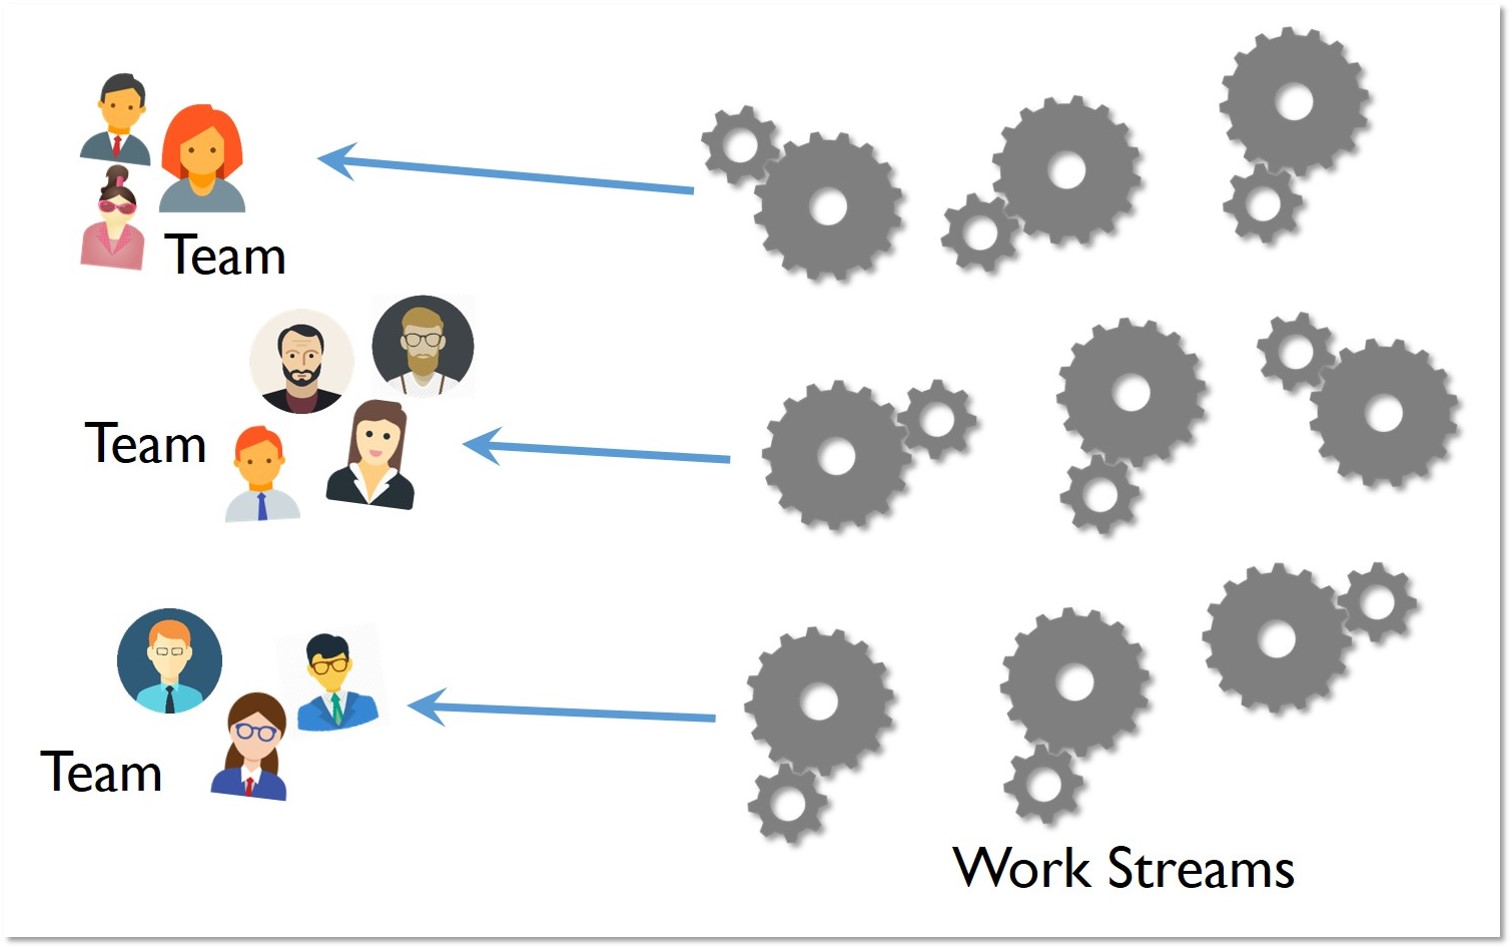 Work to Teams